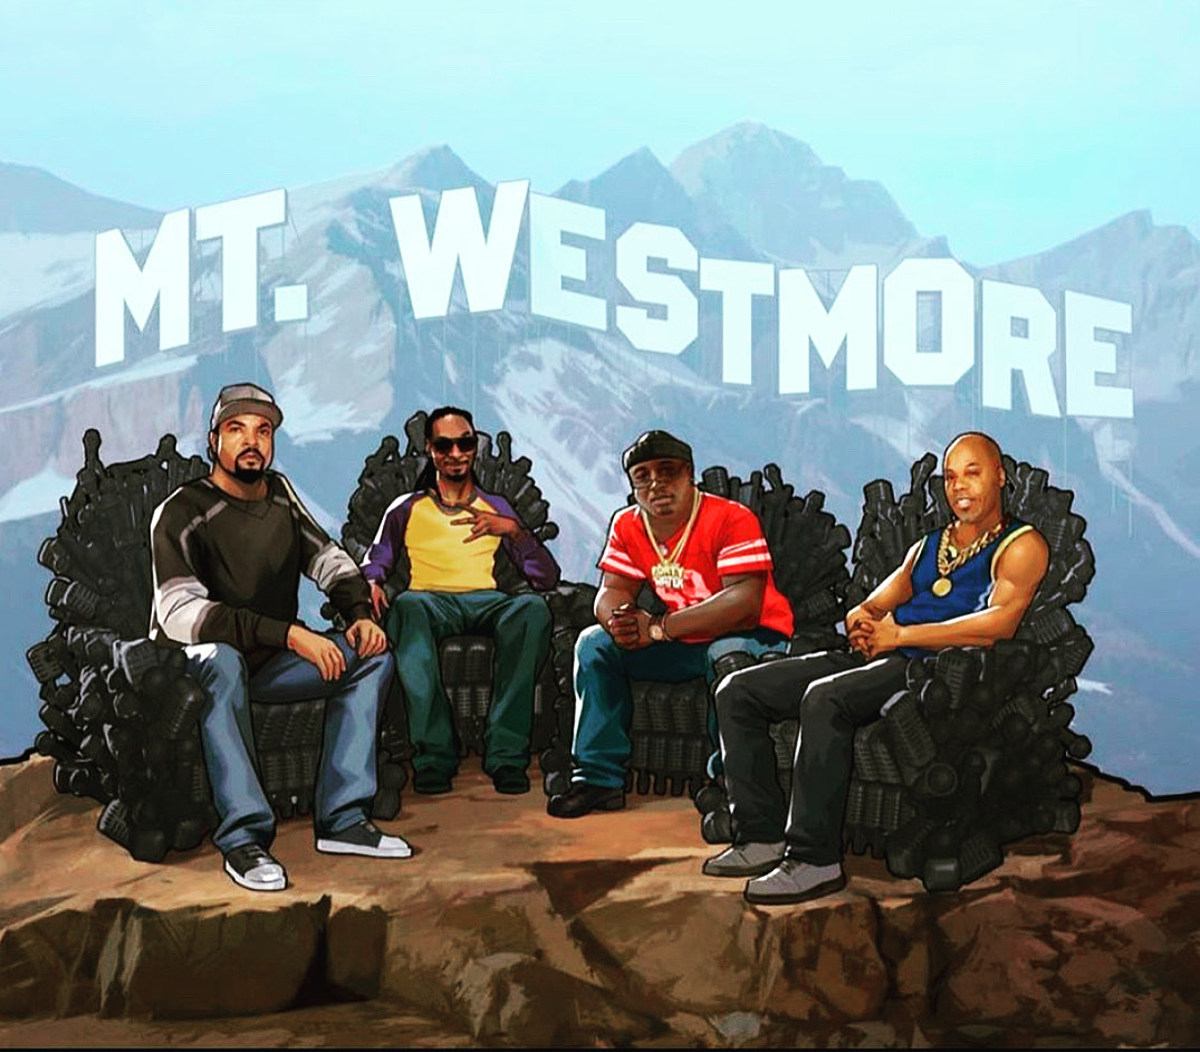 Snoop Dogg, Ice Cube, Too $hort & E-40s supergroup Mt. Westmore prep album & livestream